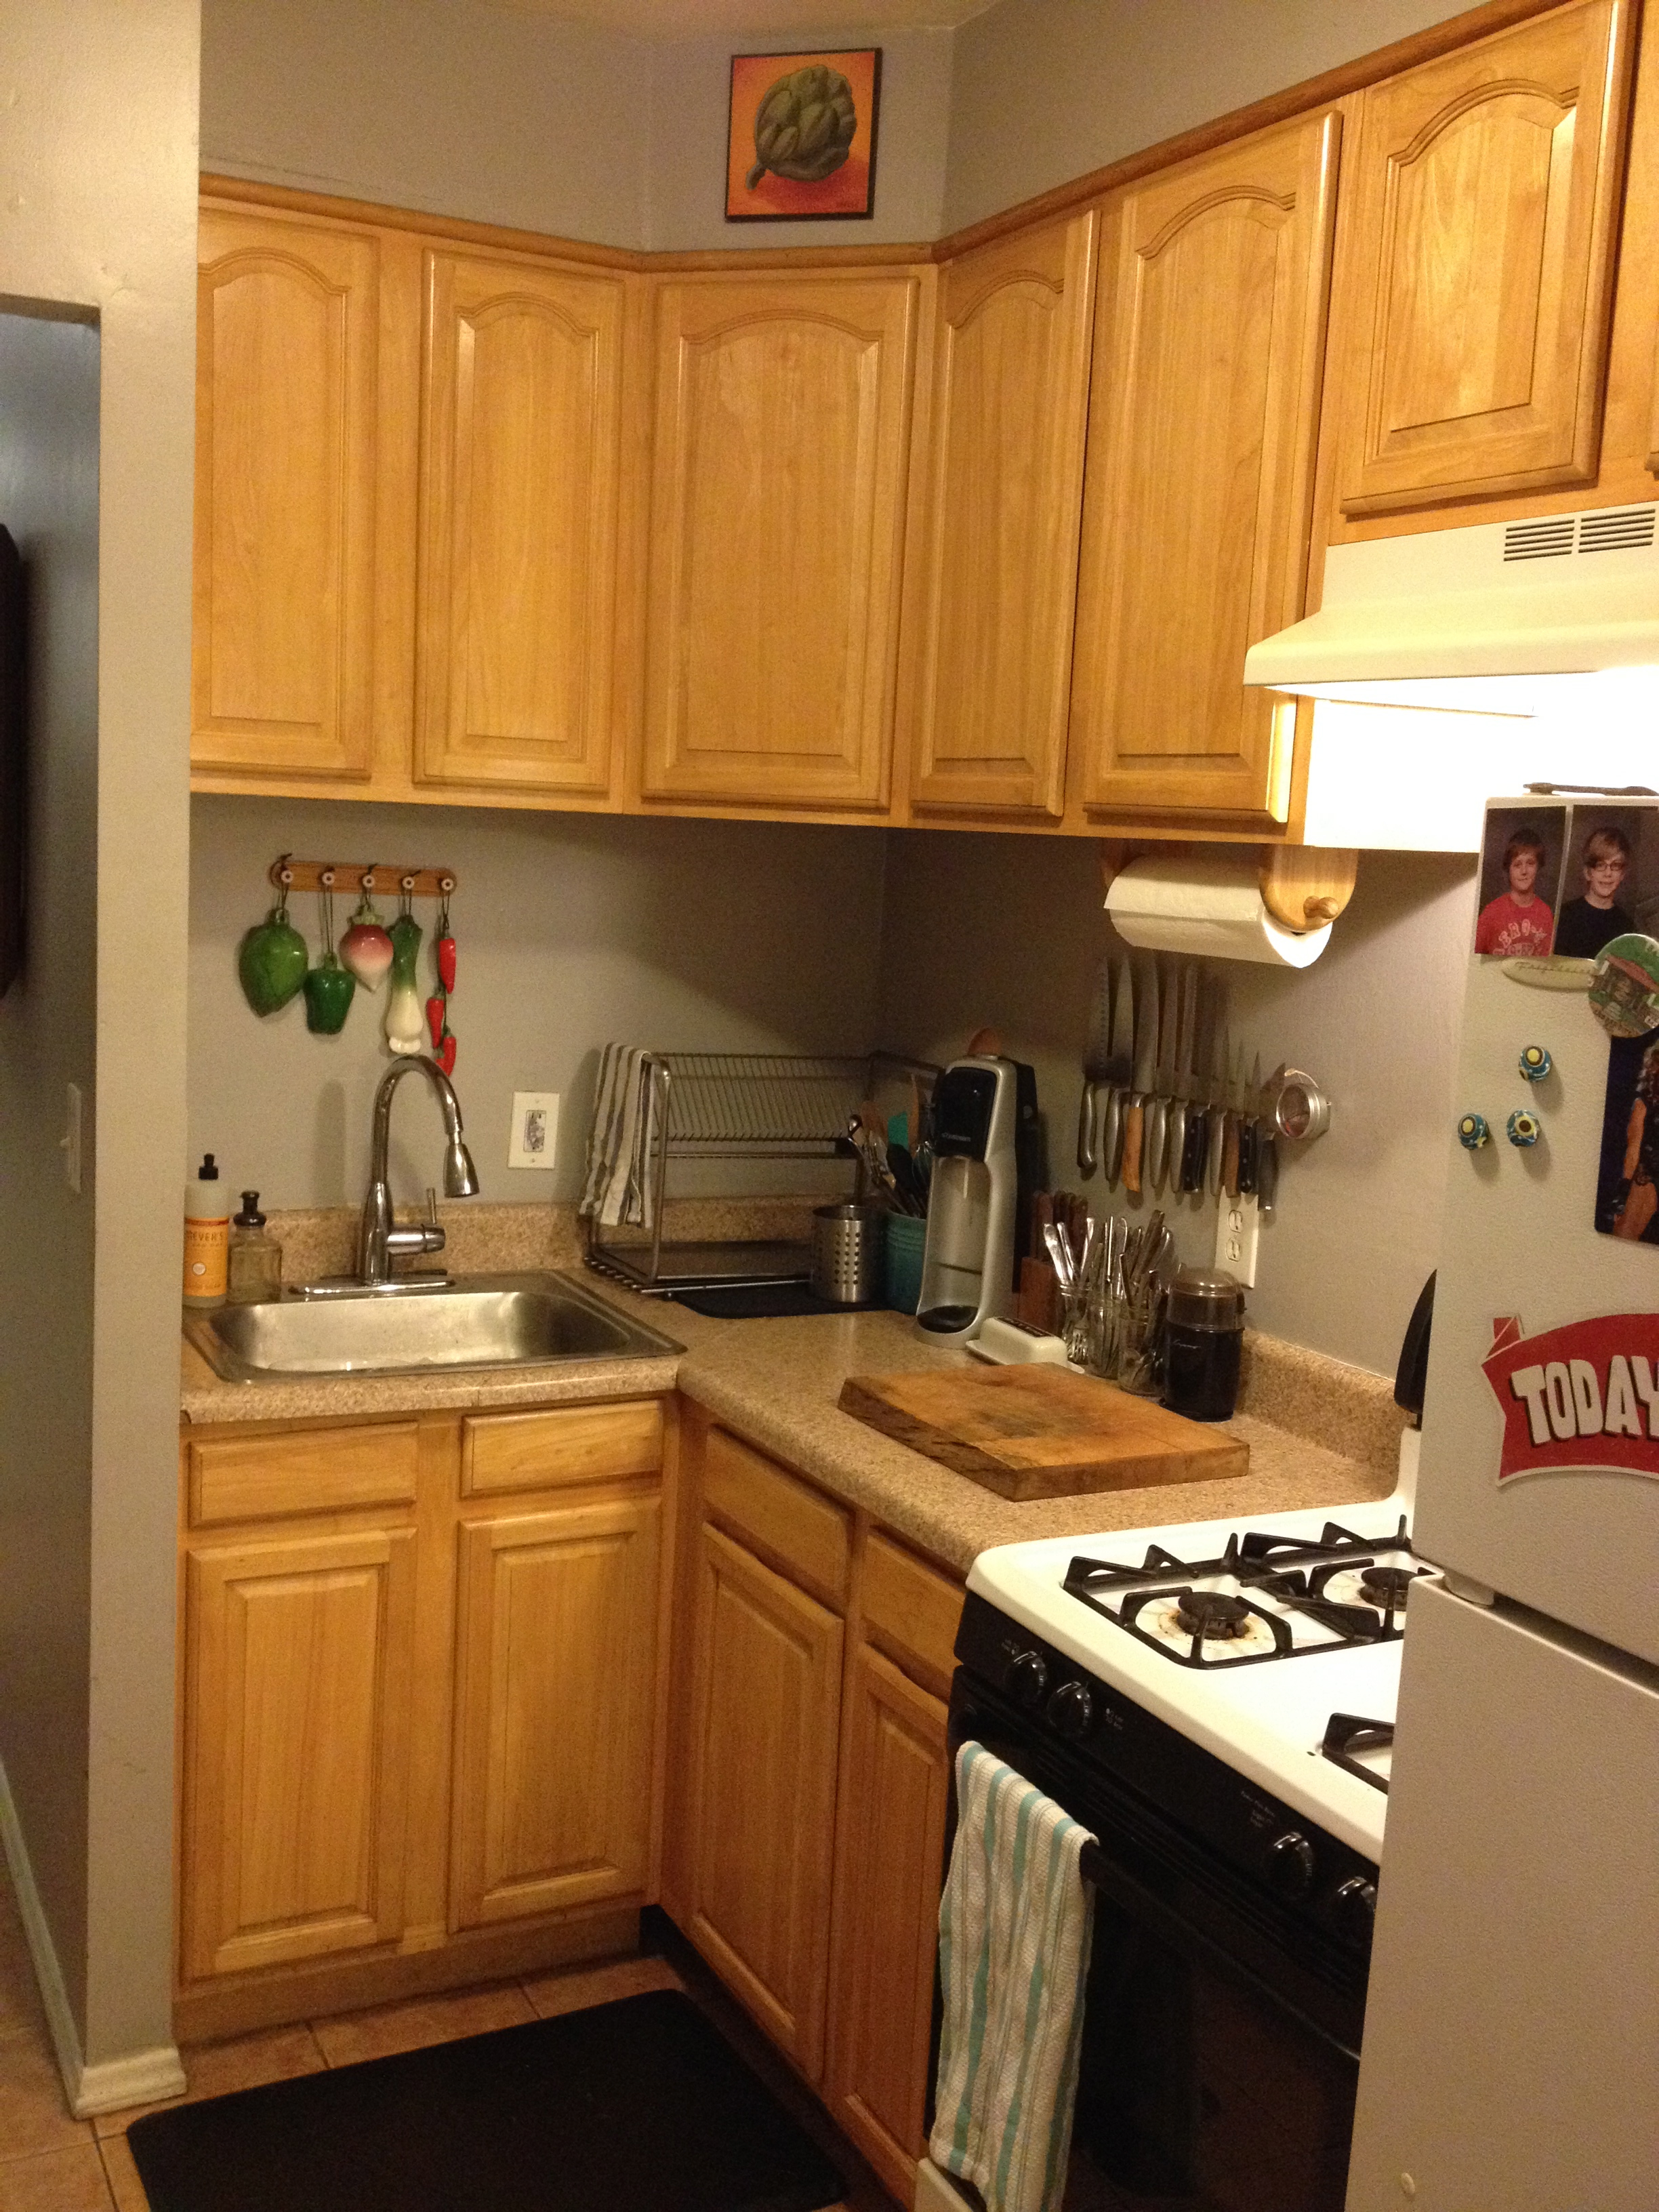 How To Update Laminate Kitchen Cabinets Kitchen Backsplash Update Brooklyn Homemaker